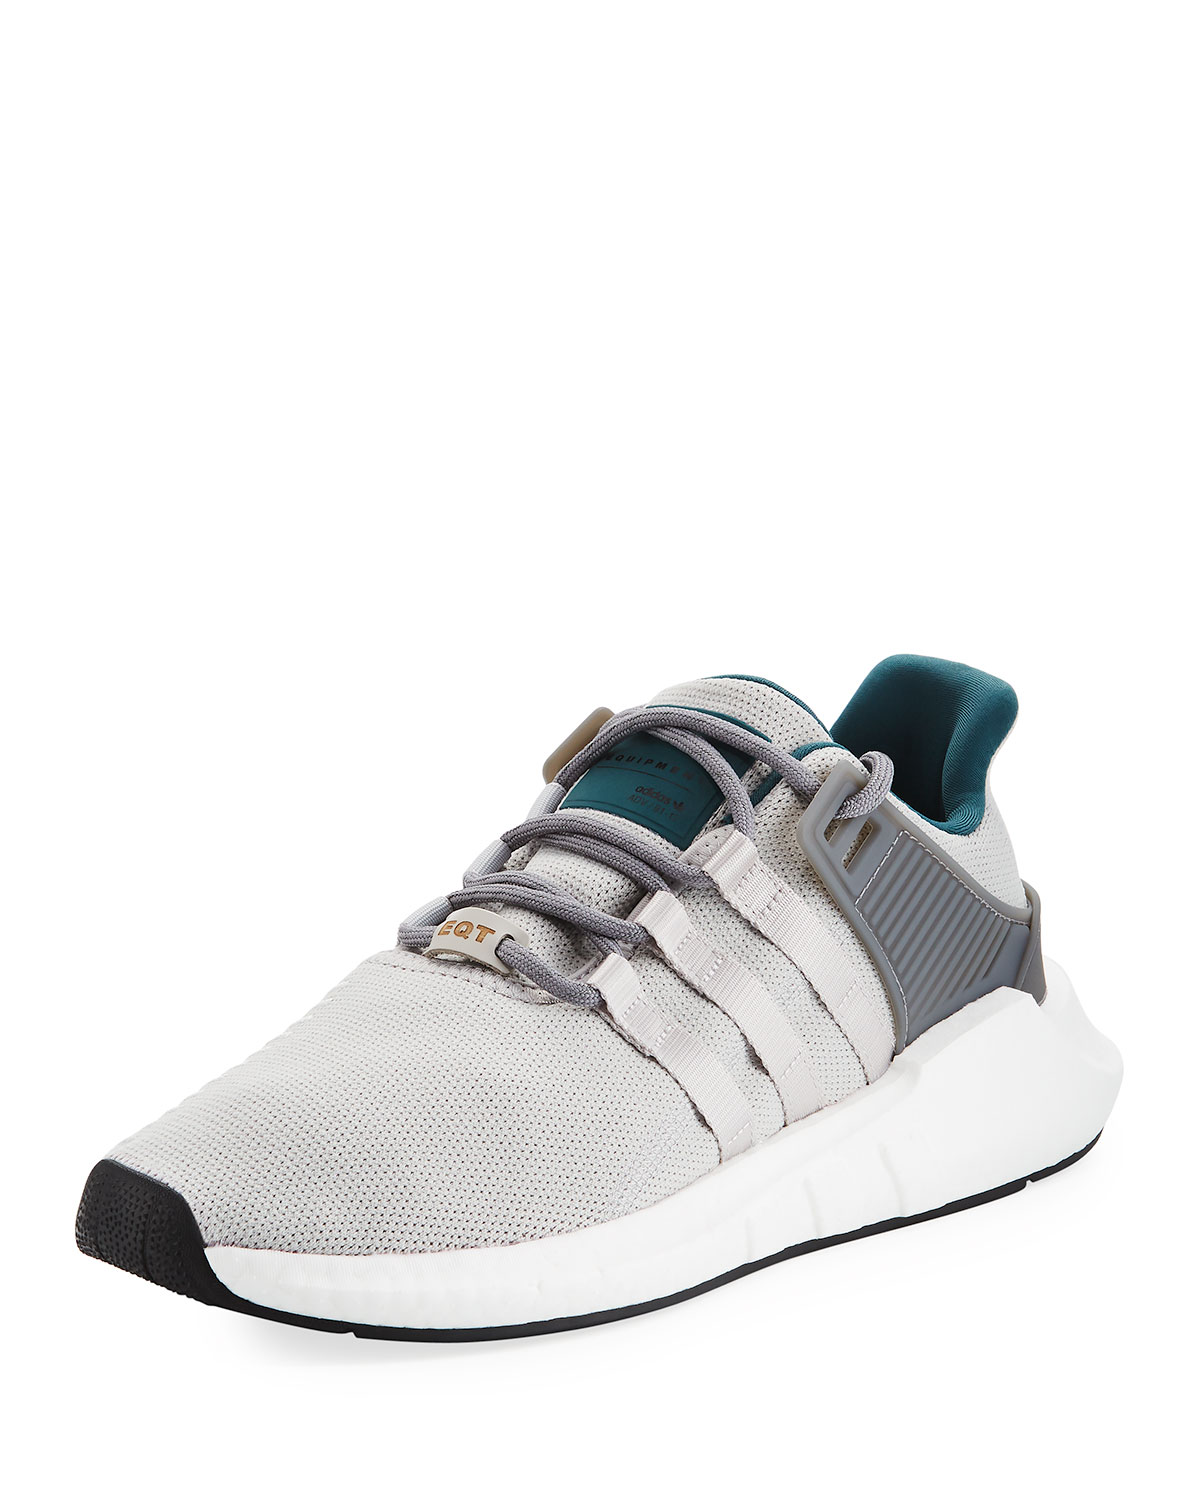 info for b108f bba72 AdidasMens EQT Support ADV 93-17 Sneakers, Gray